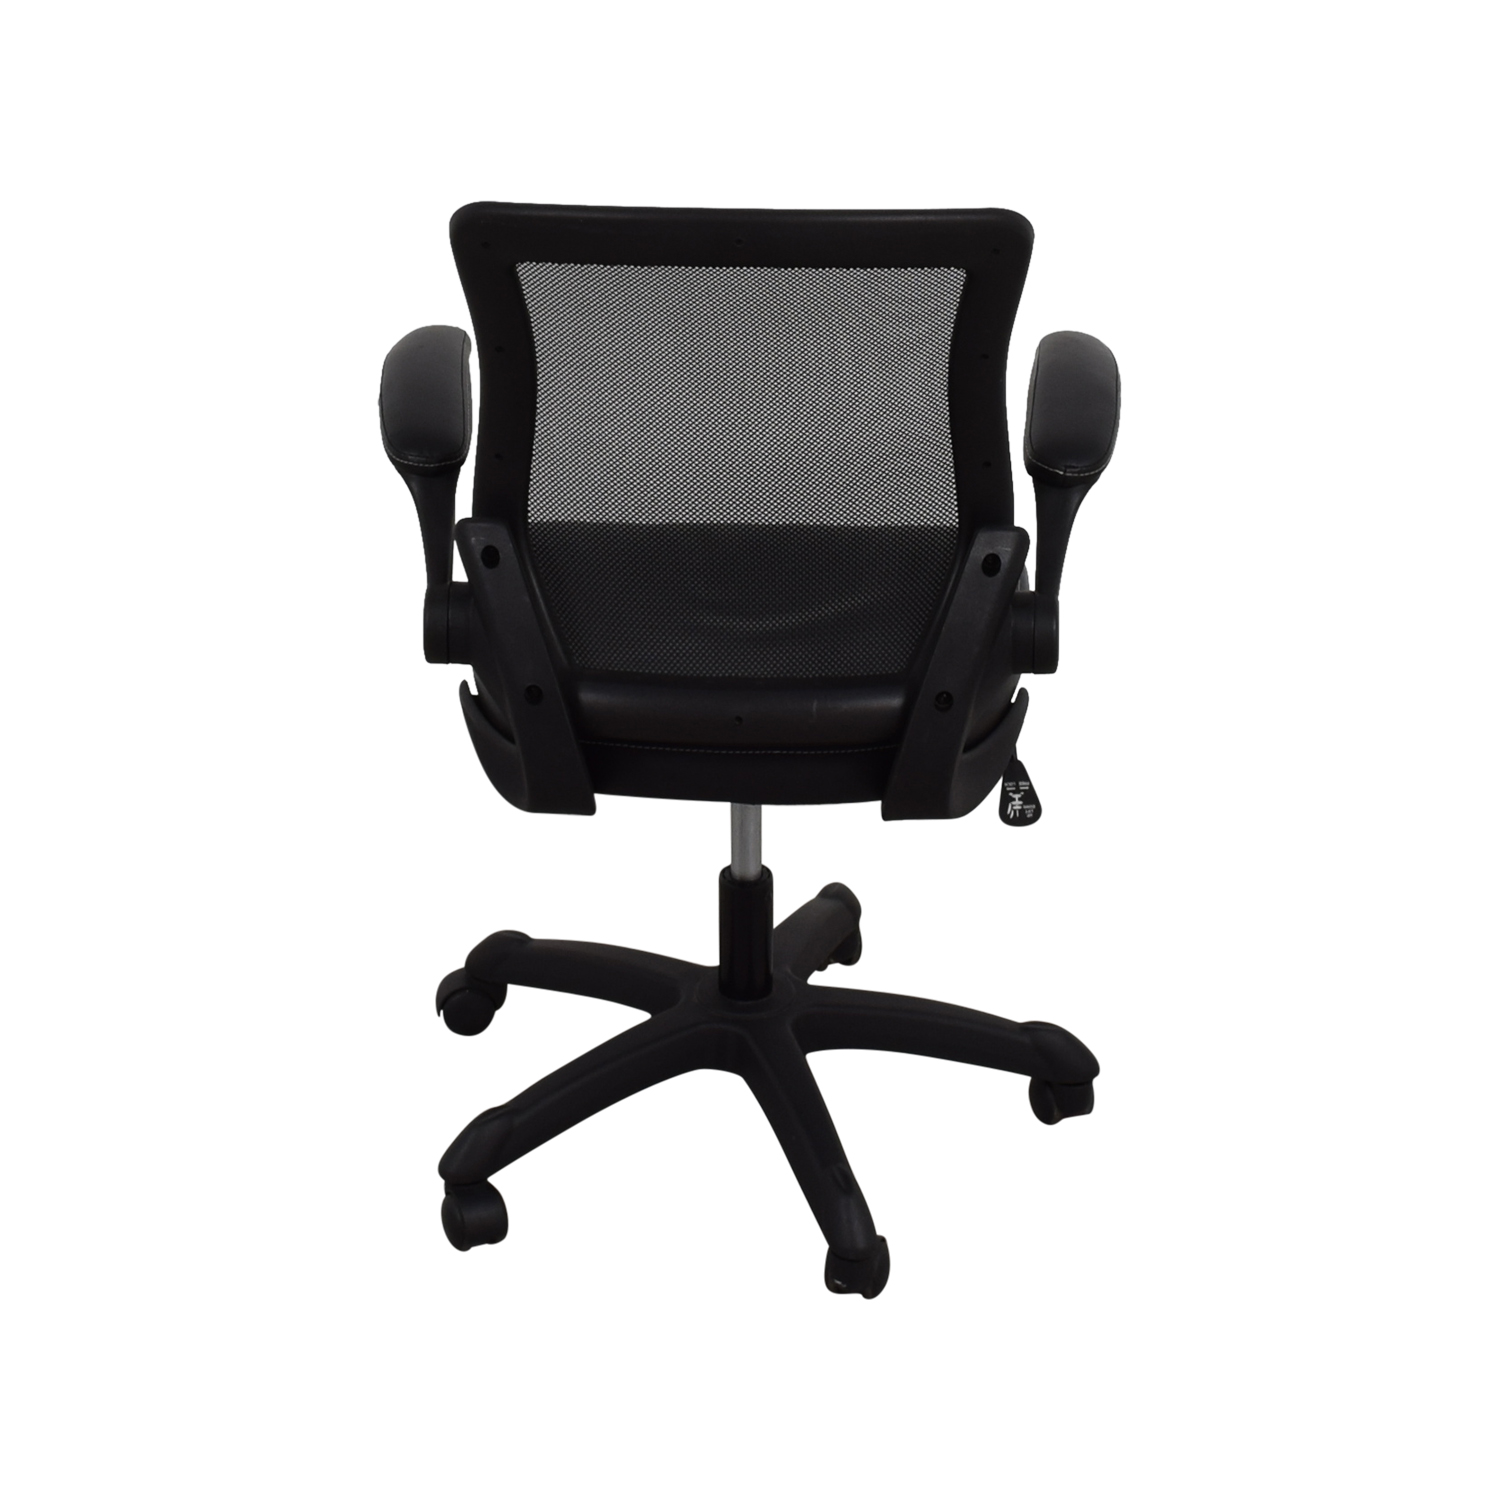 office chair adjustable arms ergonomic chairs for back pain 72 off black arm